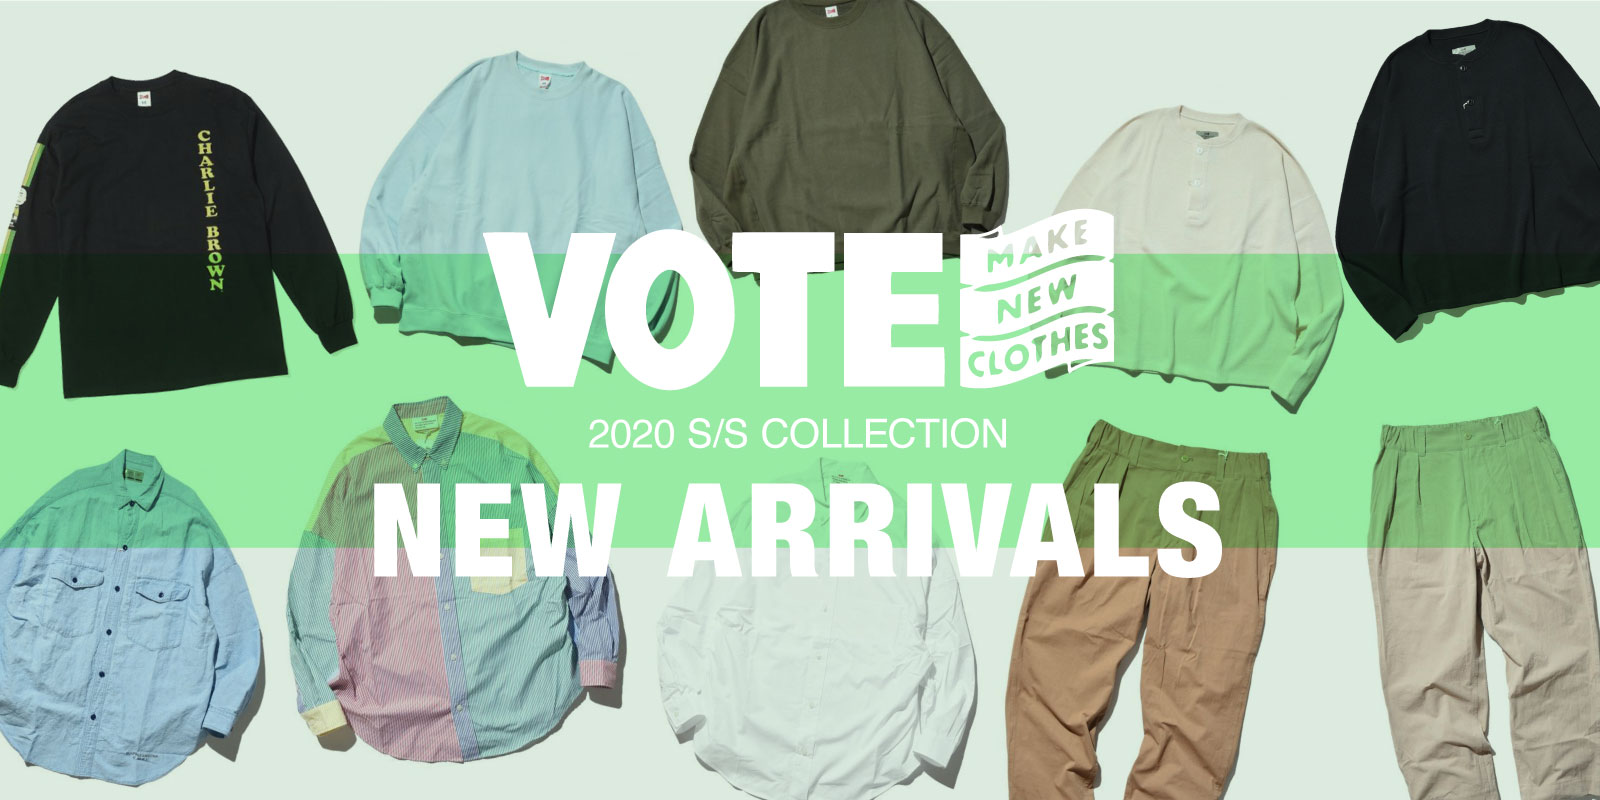 VOTE MAKE NEW CLOTHES(ヴォート メイク ニュークローズ)